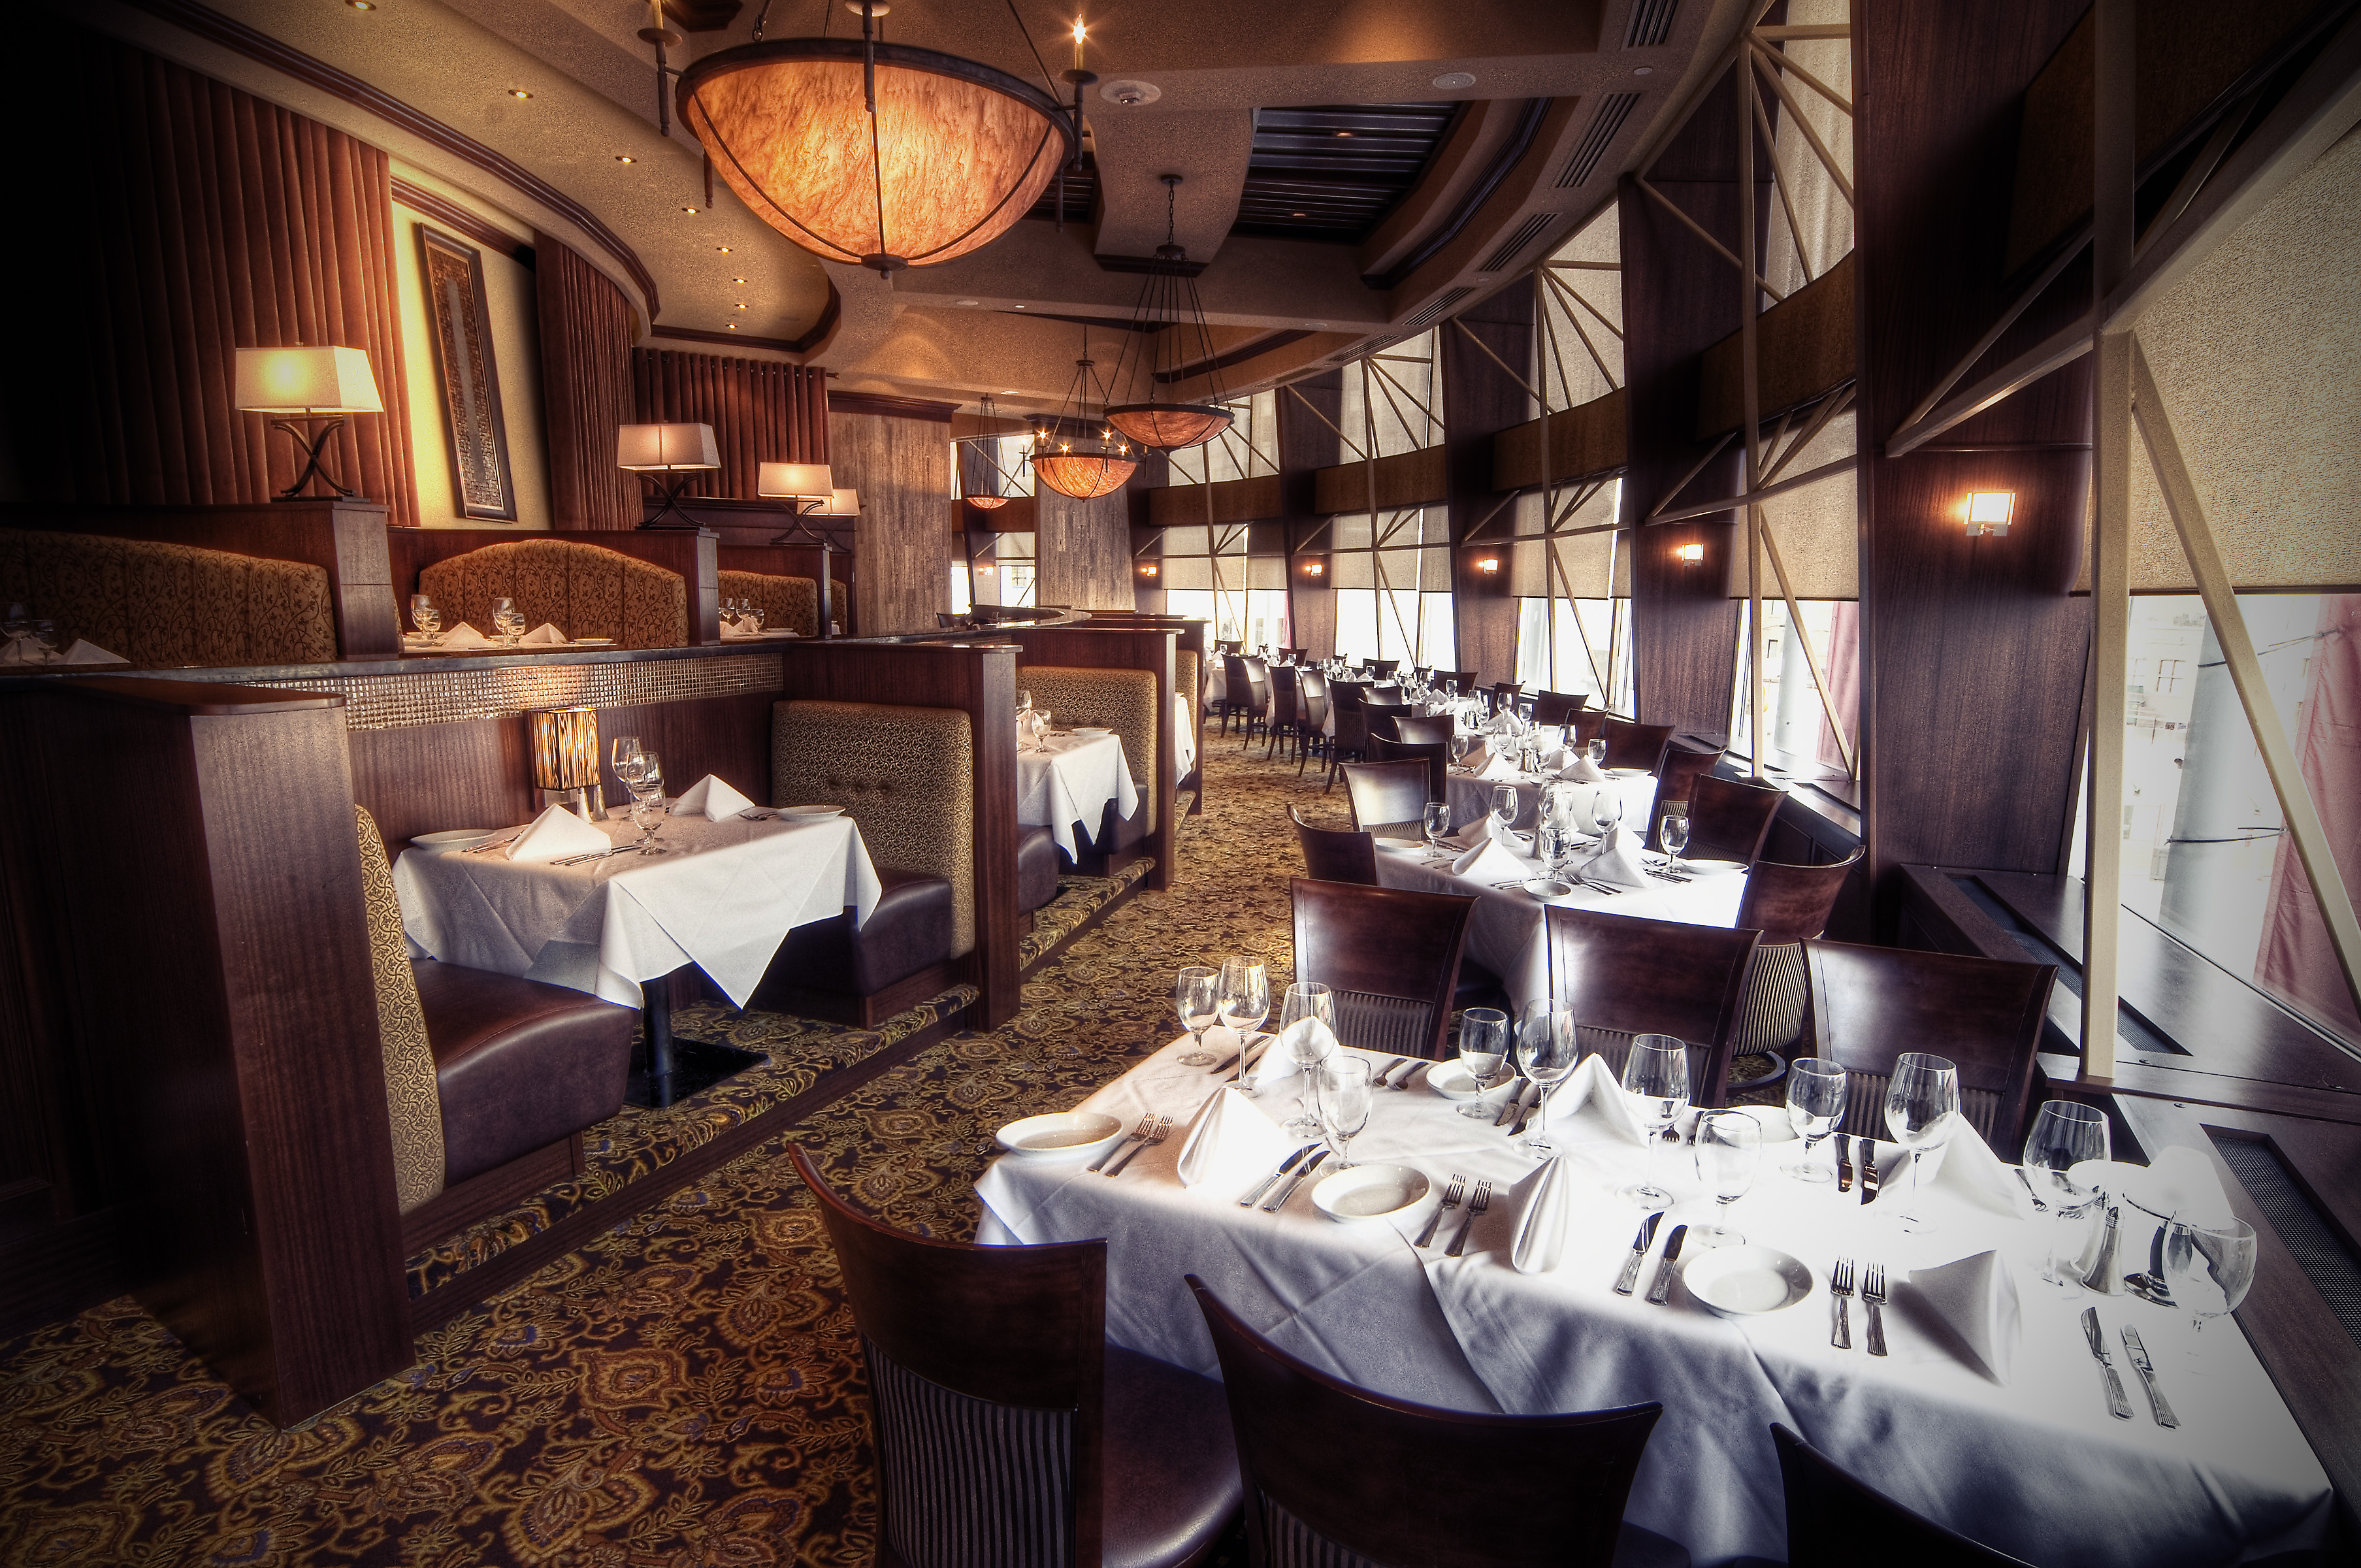 Ruth's Chris Steakhouse Realizes Big Gains From Business Intelligence On the Customer Survey.